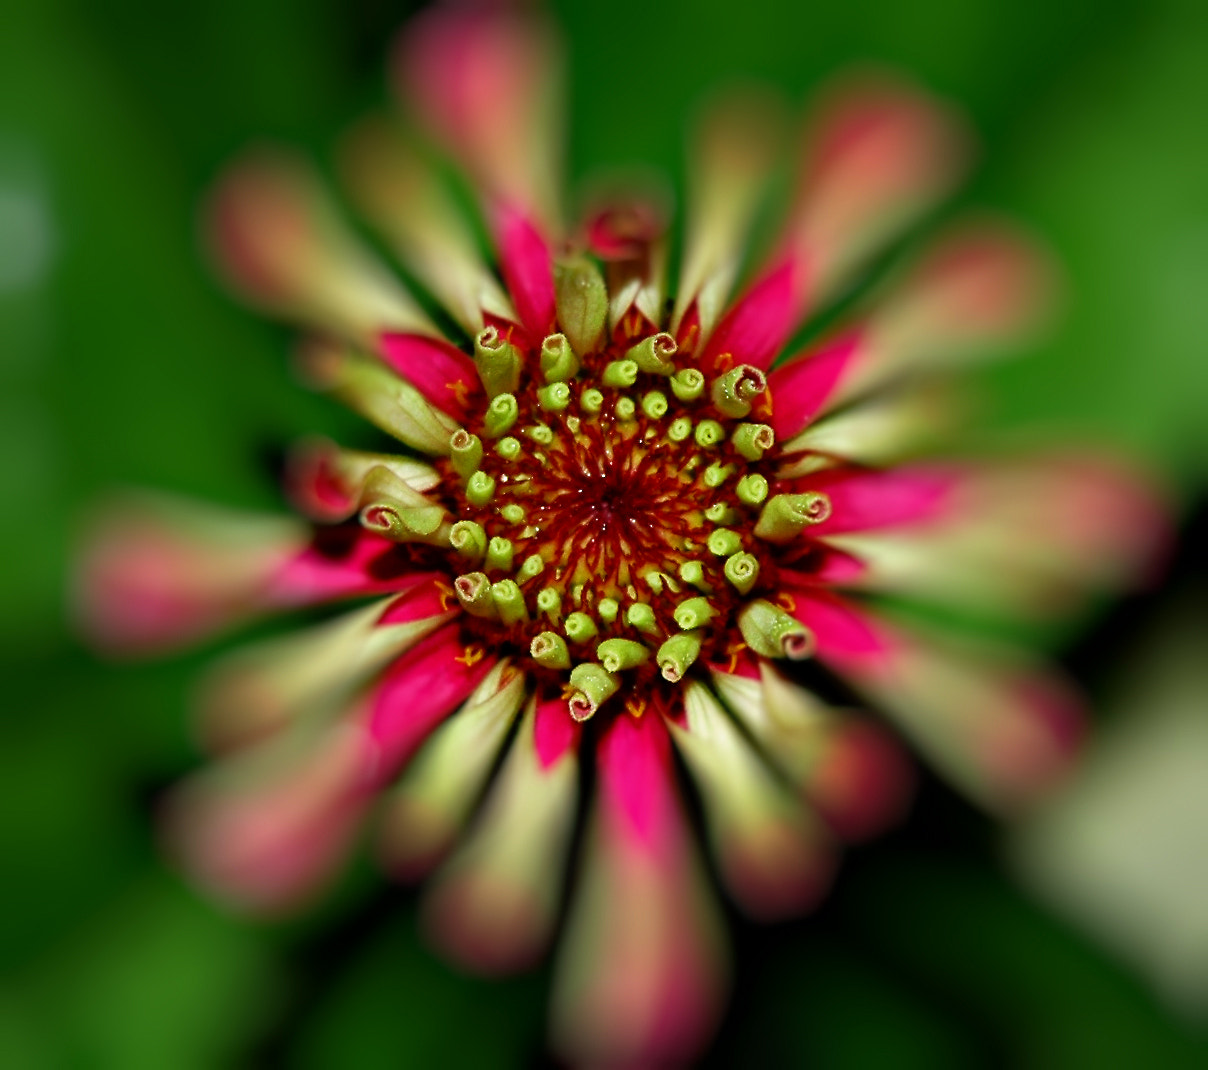 Photograph Depth of Field by Jeff Clow on 500px